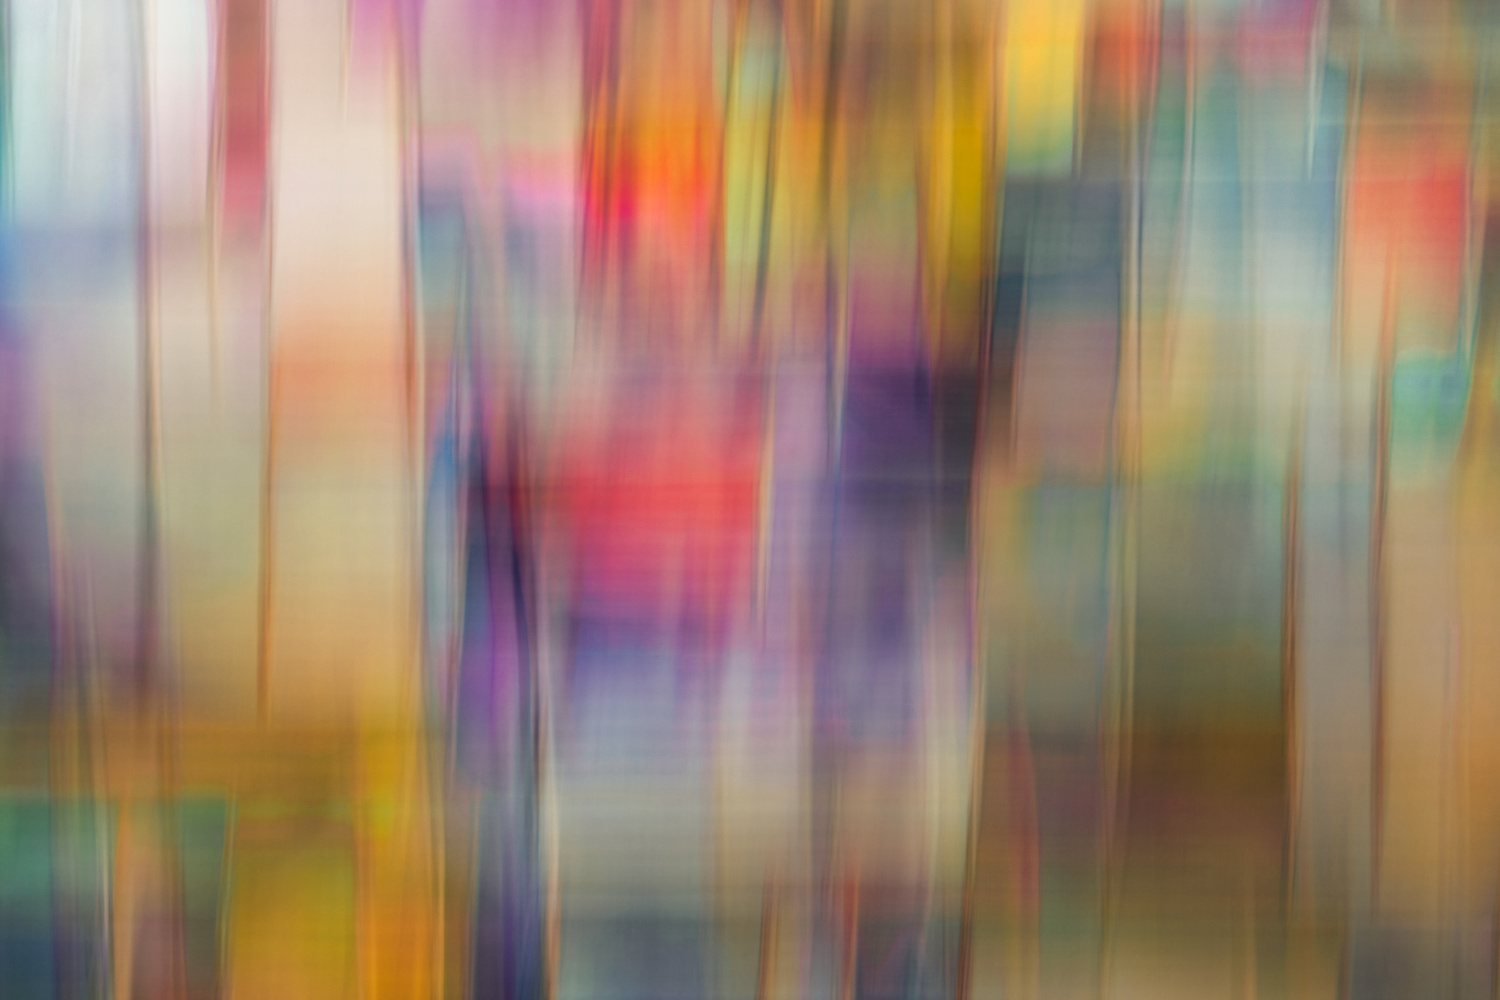 Stained Glass ICM by Matthew Lacy